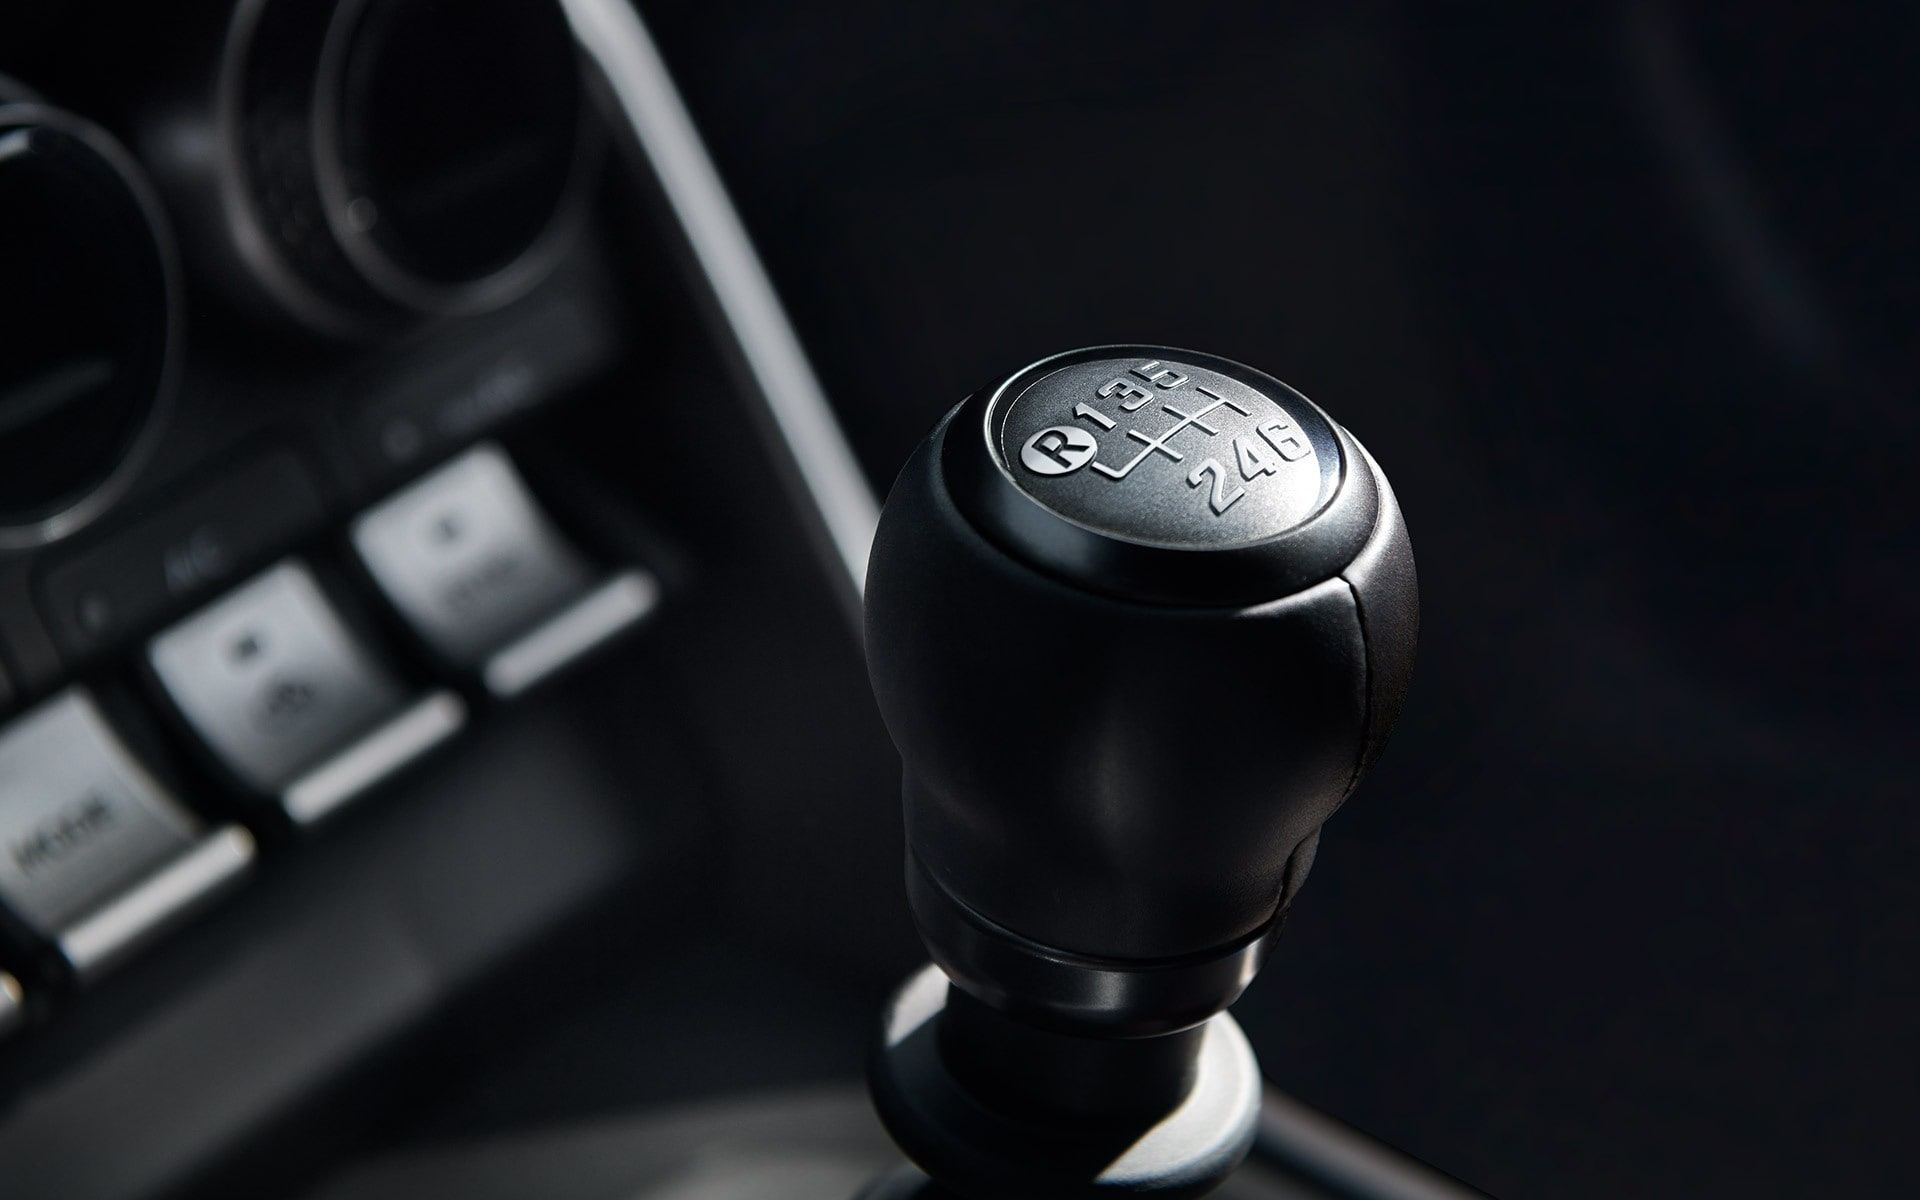 2022 Subaru BRZ manual transmission